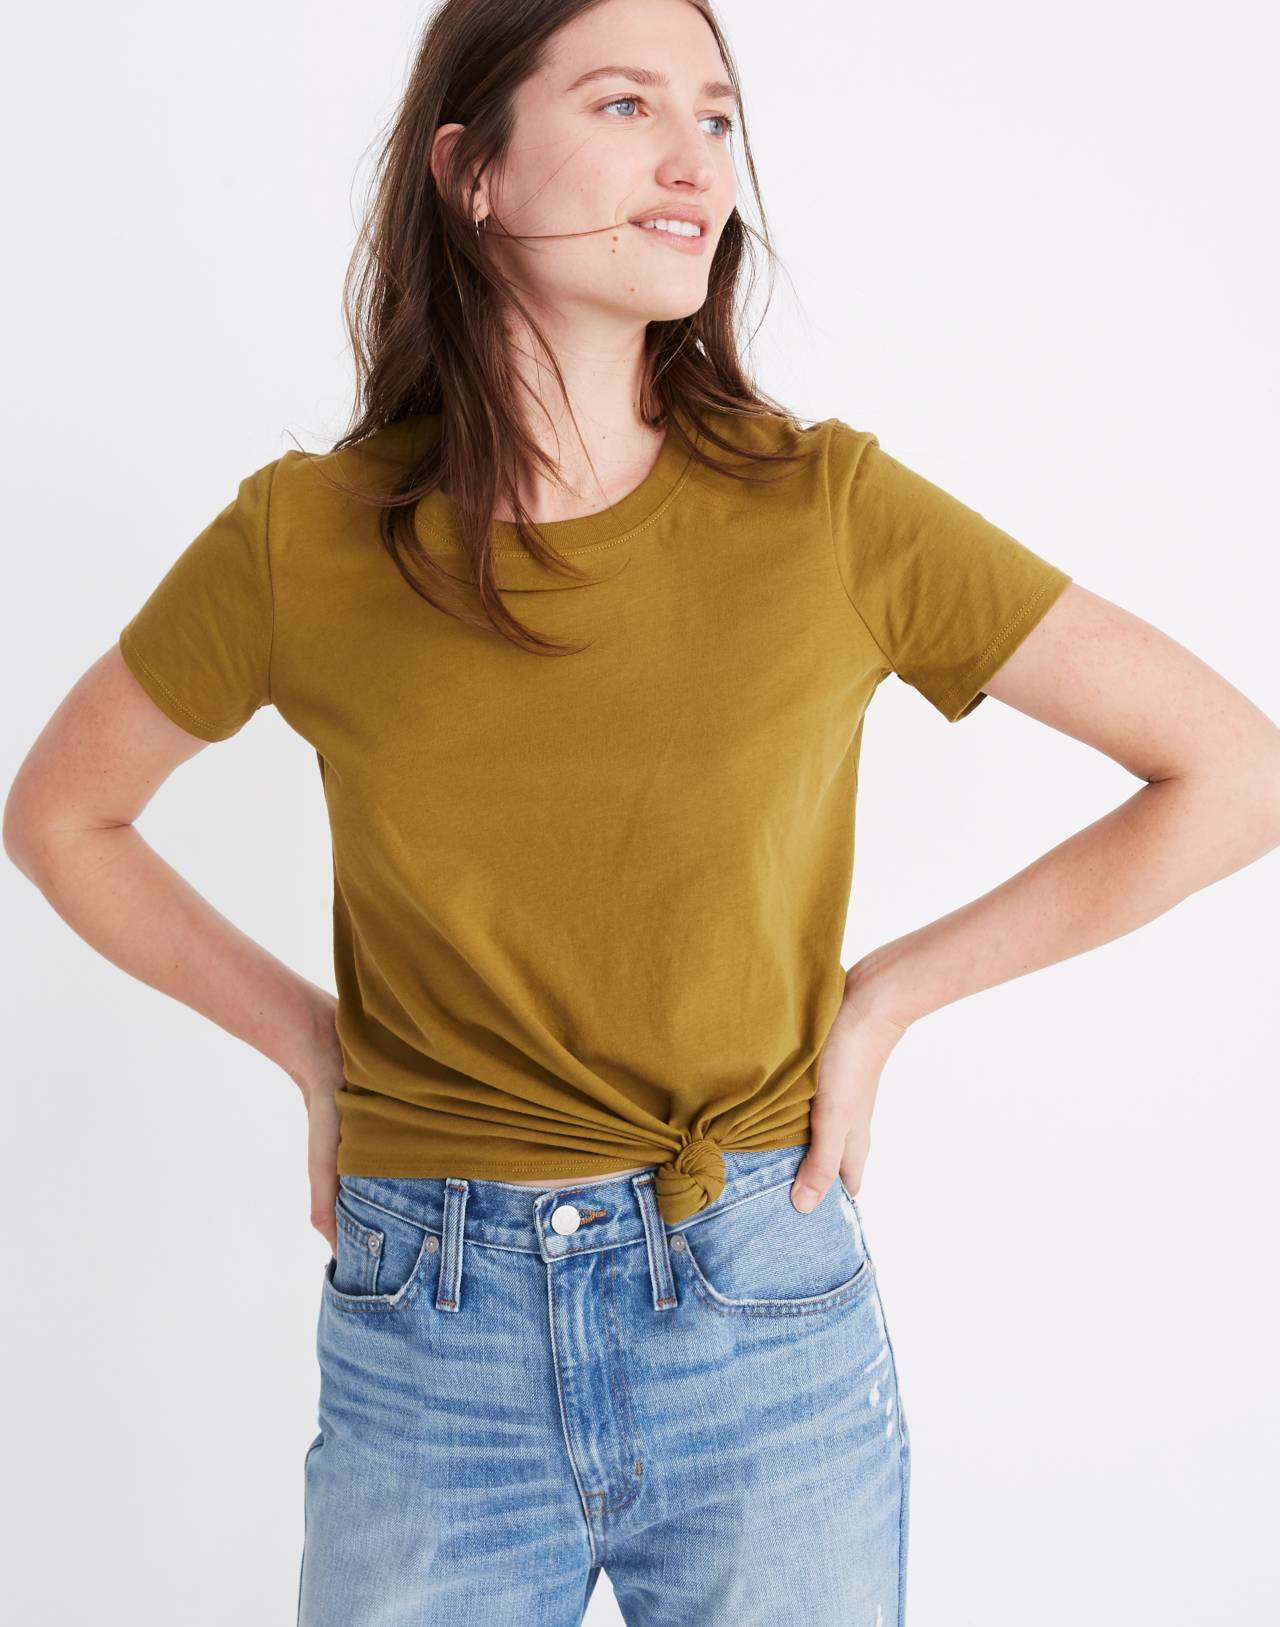 Knot-Front Tee in spiced olive image 1